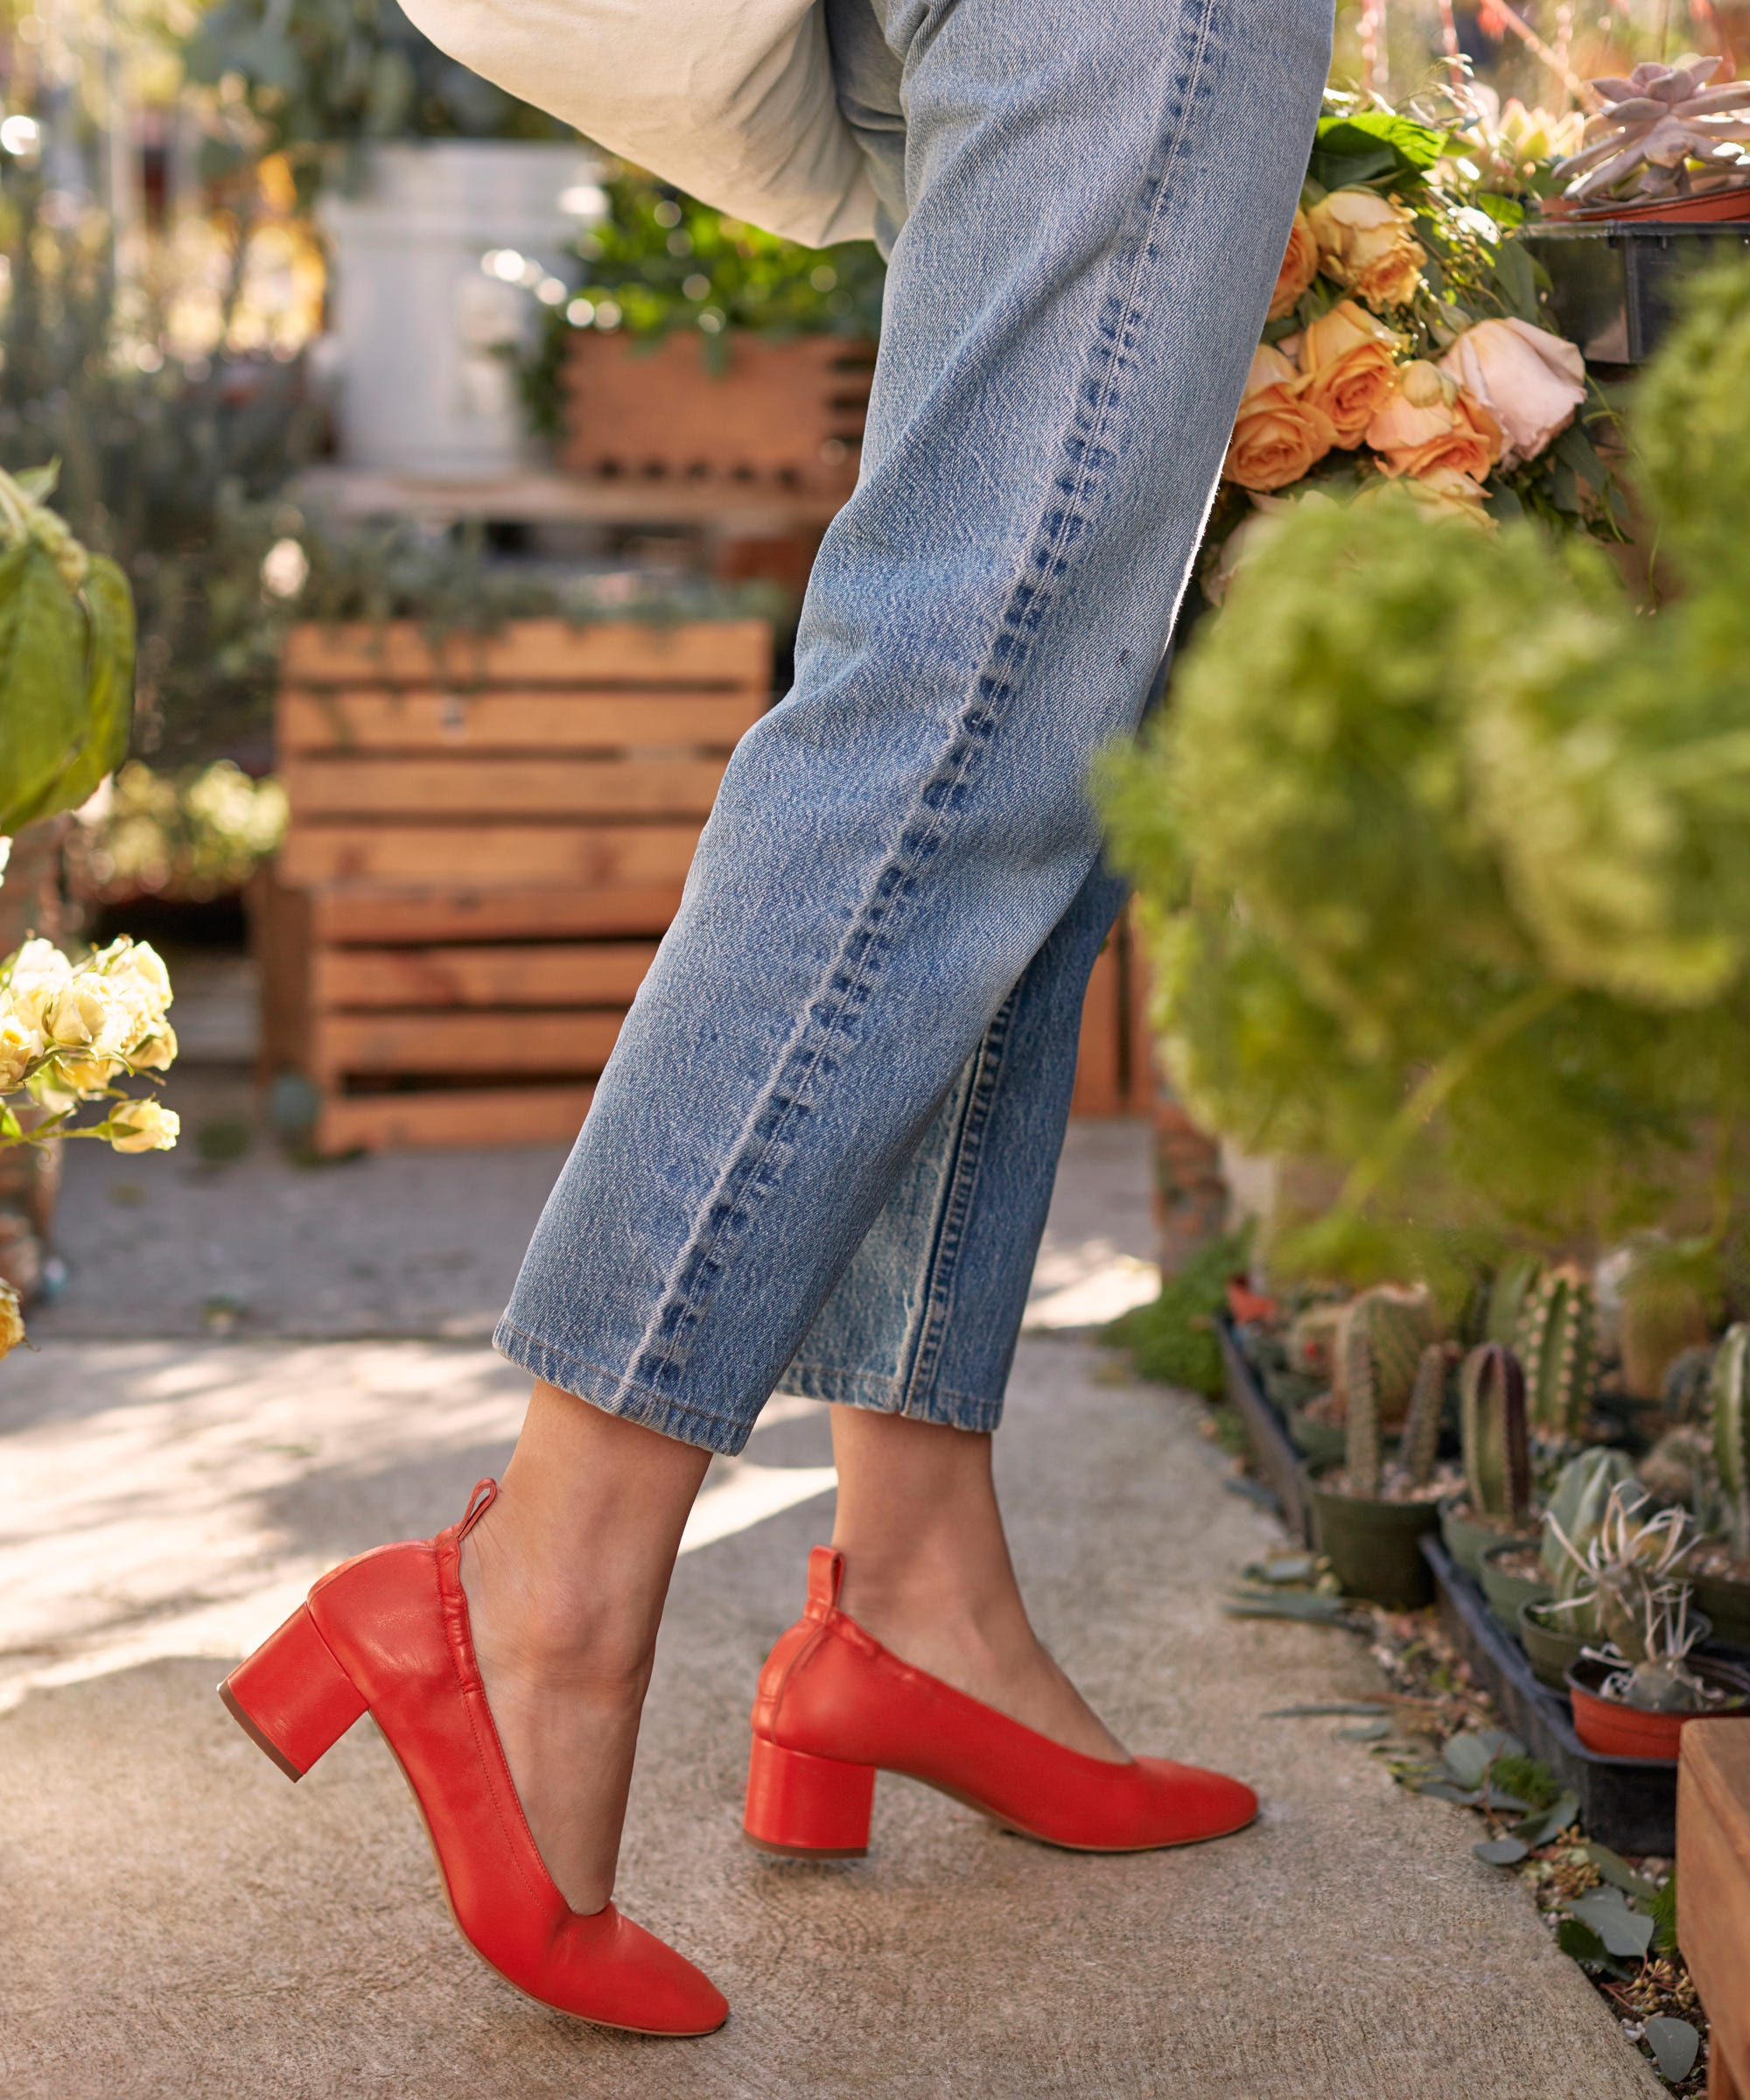 778c95bac22a Everlane New Fall Shoes - Restock Best Selling Day Heel